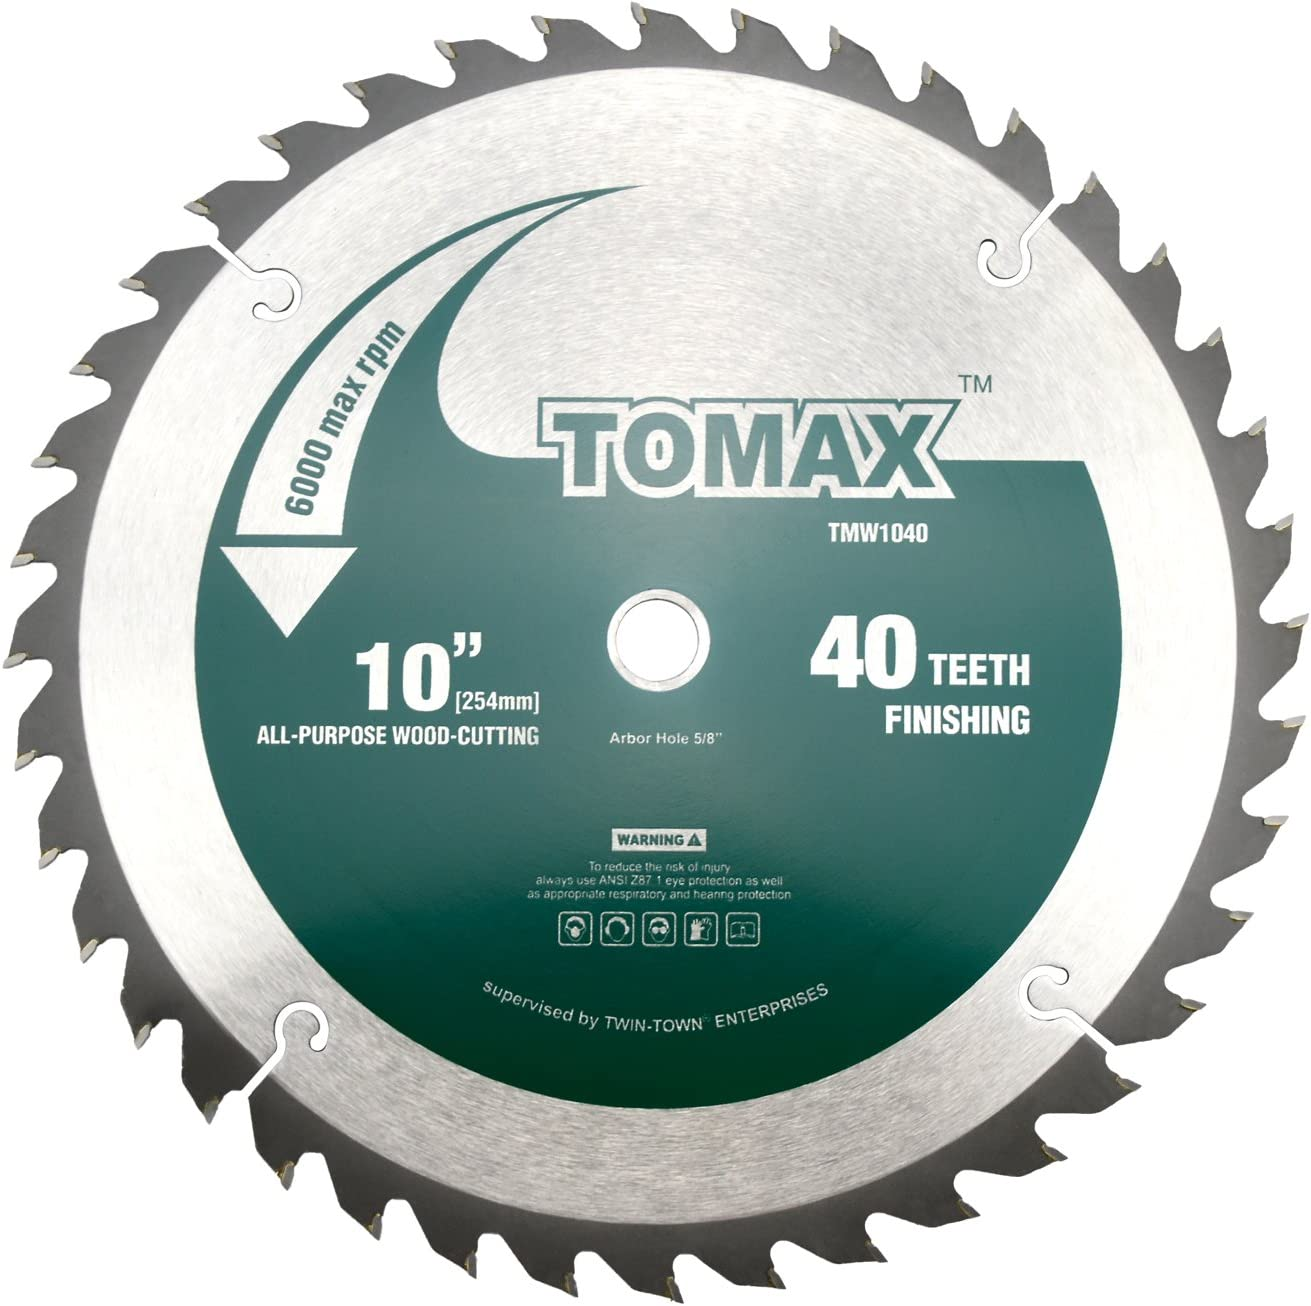 6. TOMAX 12-Inch Saw Blade